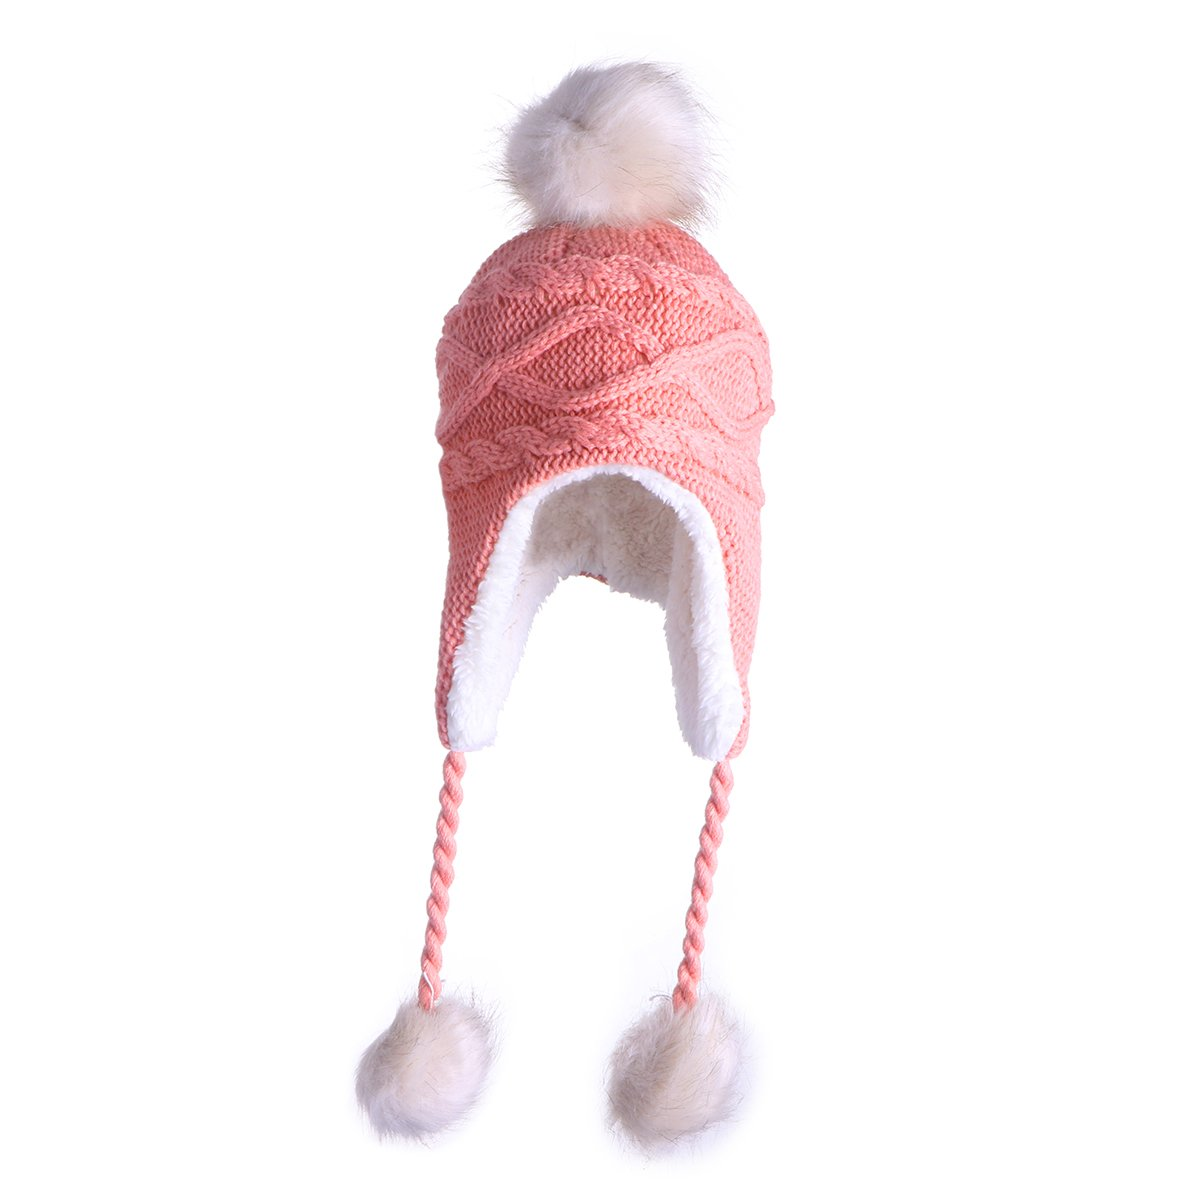 Tinksky Cute Winter Warm Knit Wool Hat Dual Ball Ear Flap with Pom ...